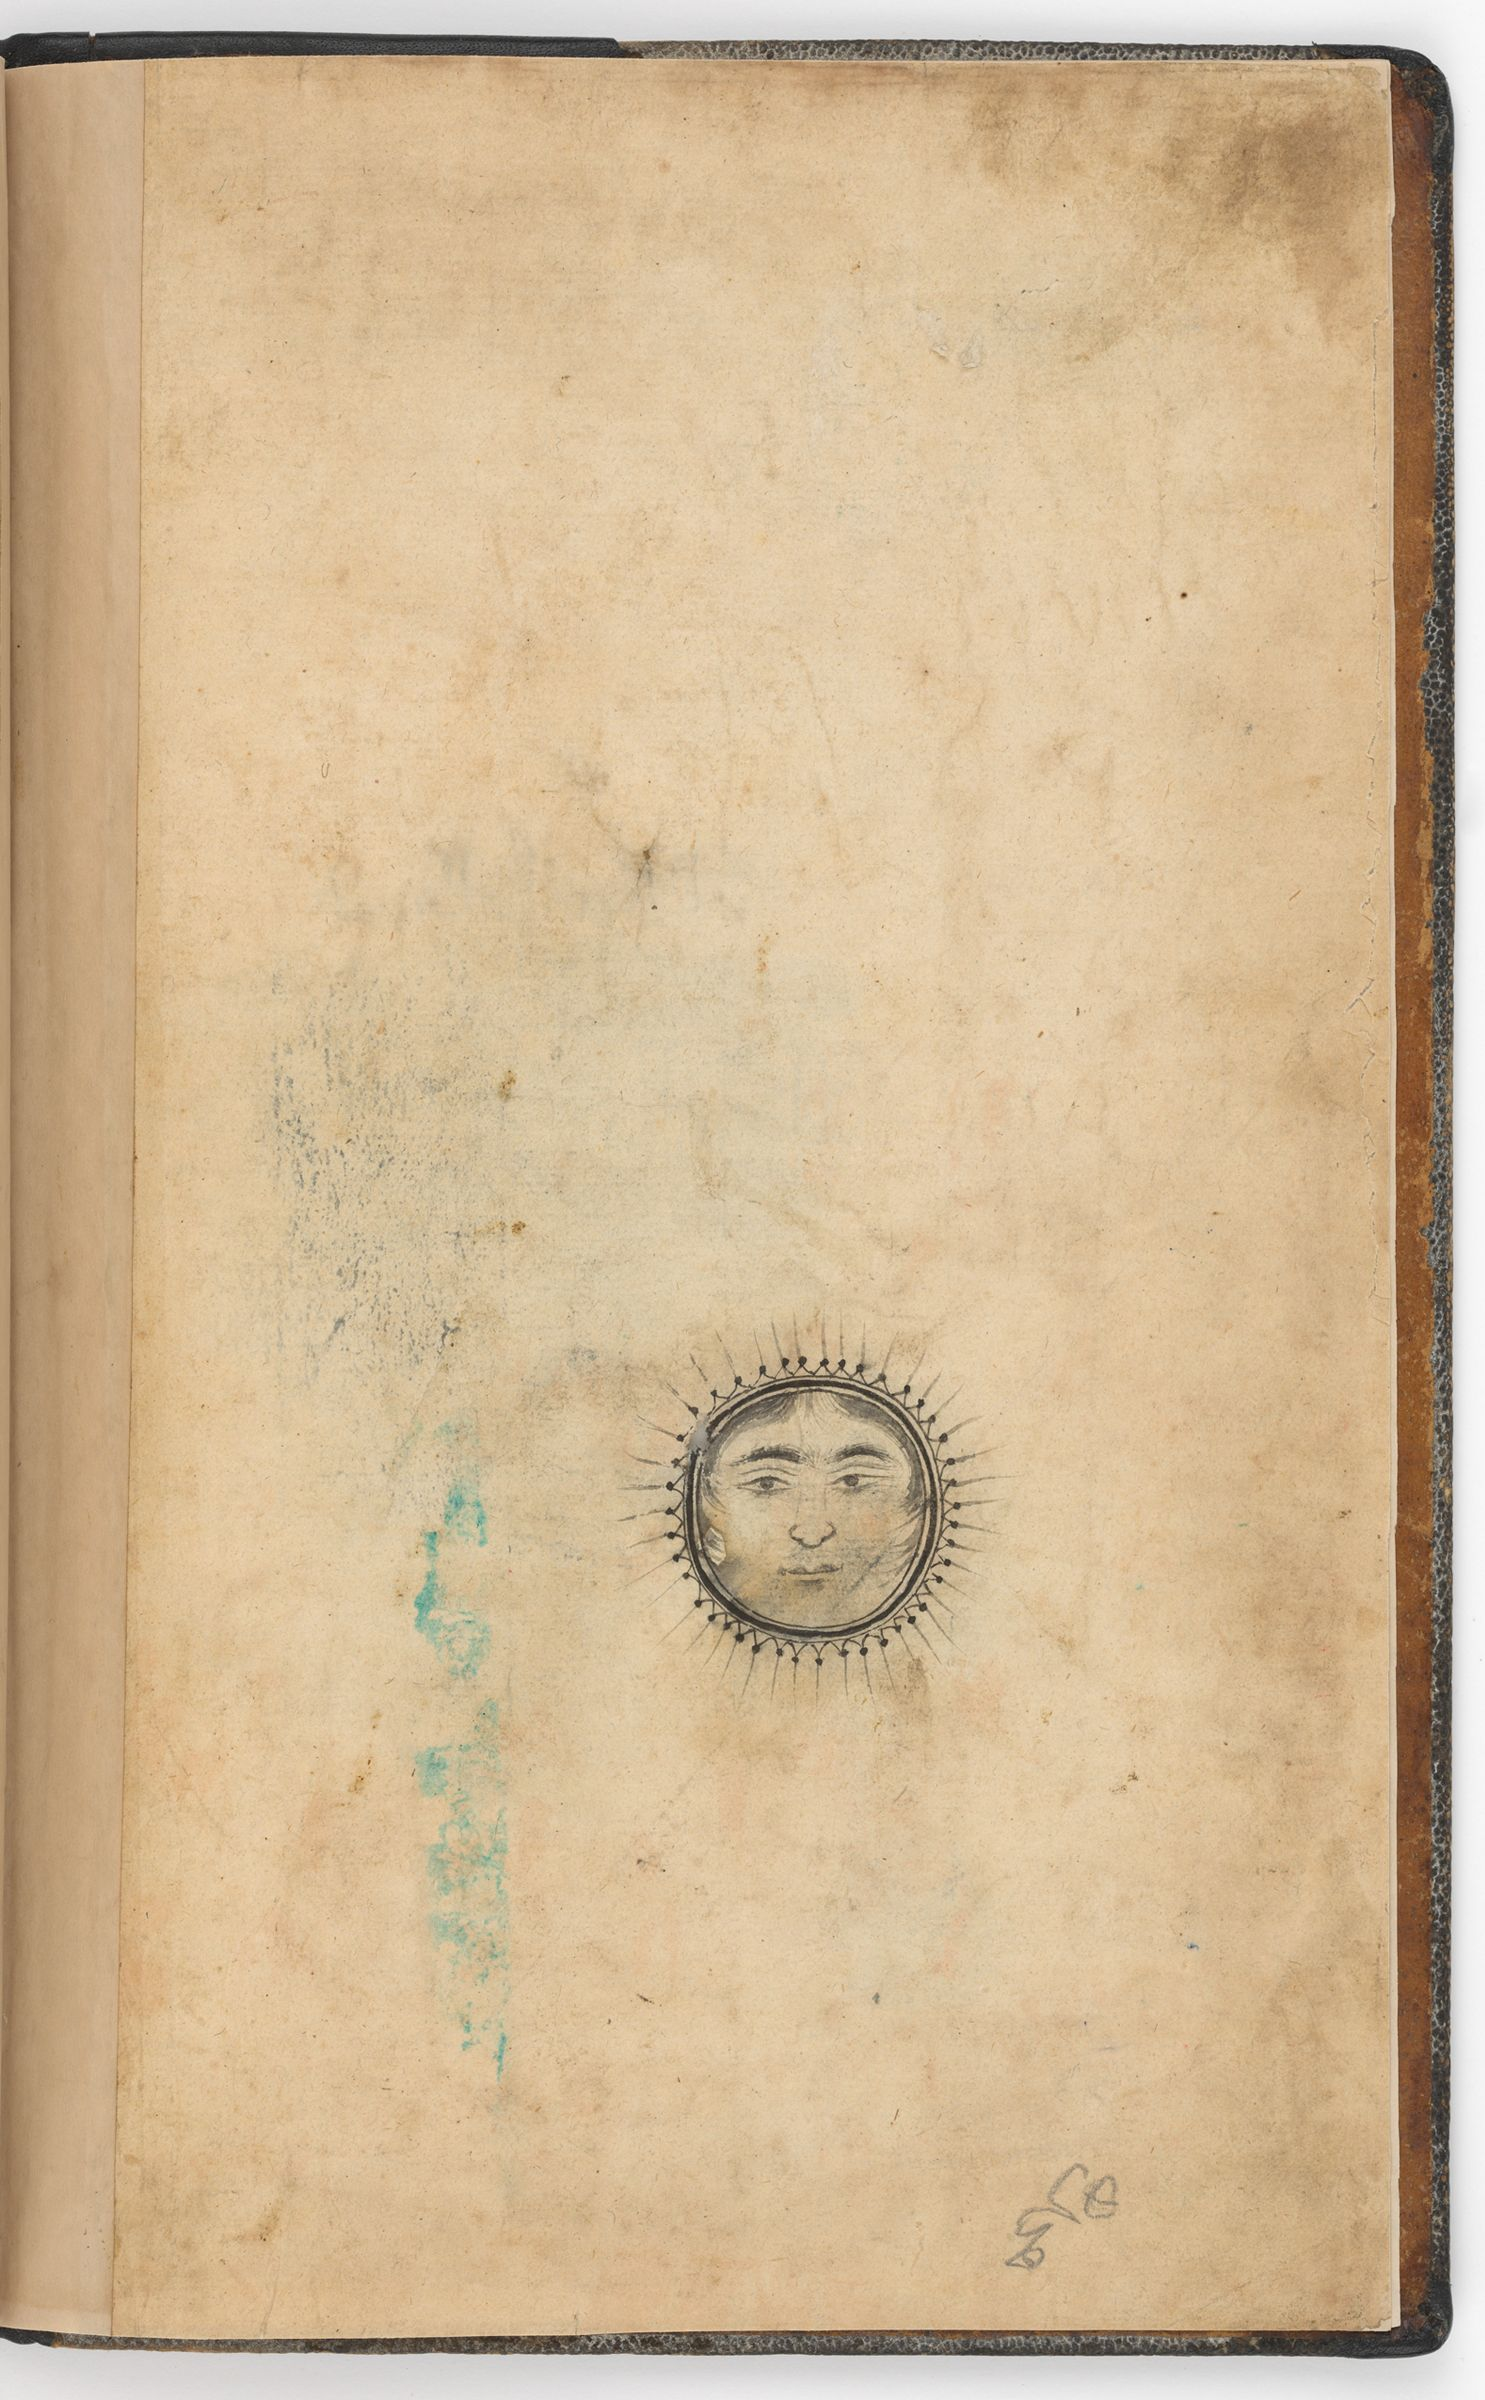 Flyleaf With A Drawing And Erased Seal Impressions (Erased Seal Impression Recto; Drawing Verso Of Folio 1), Folio From A Manuscript Of The Khamsa By Nizami